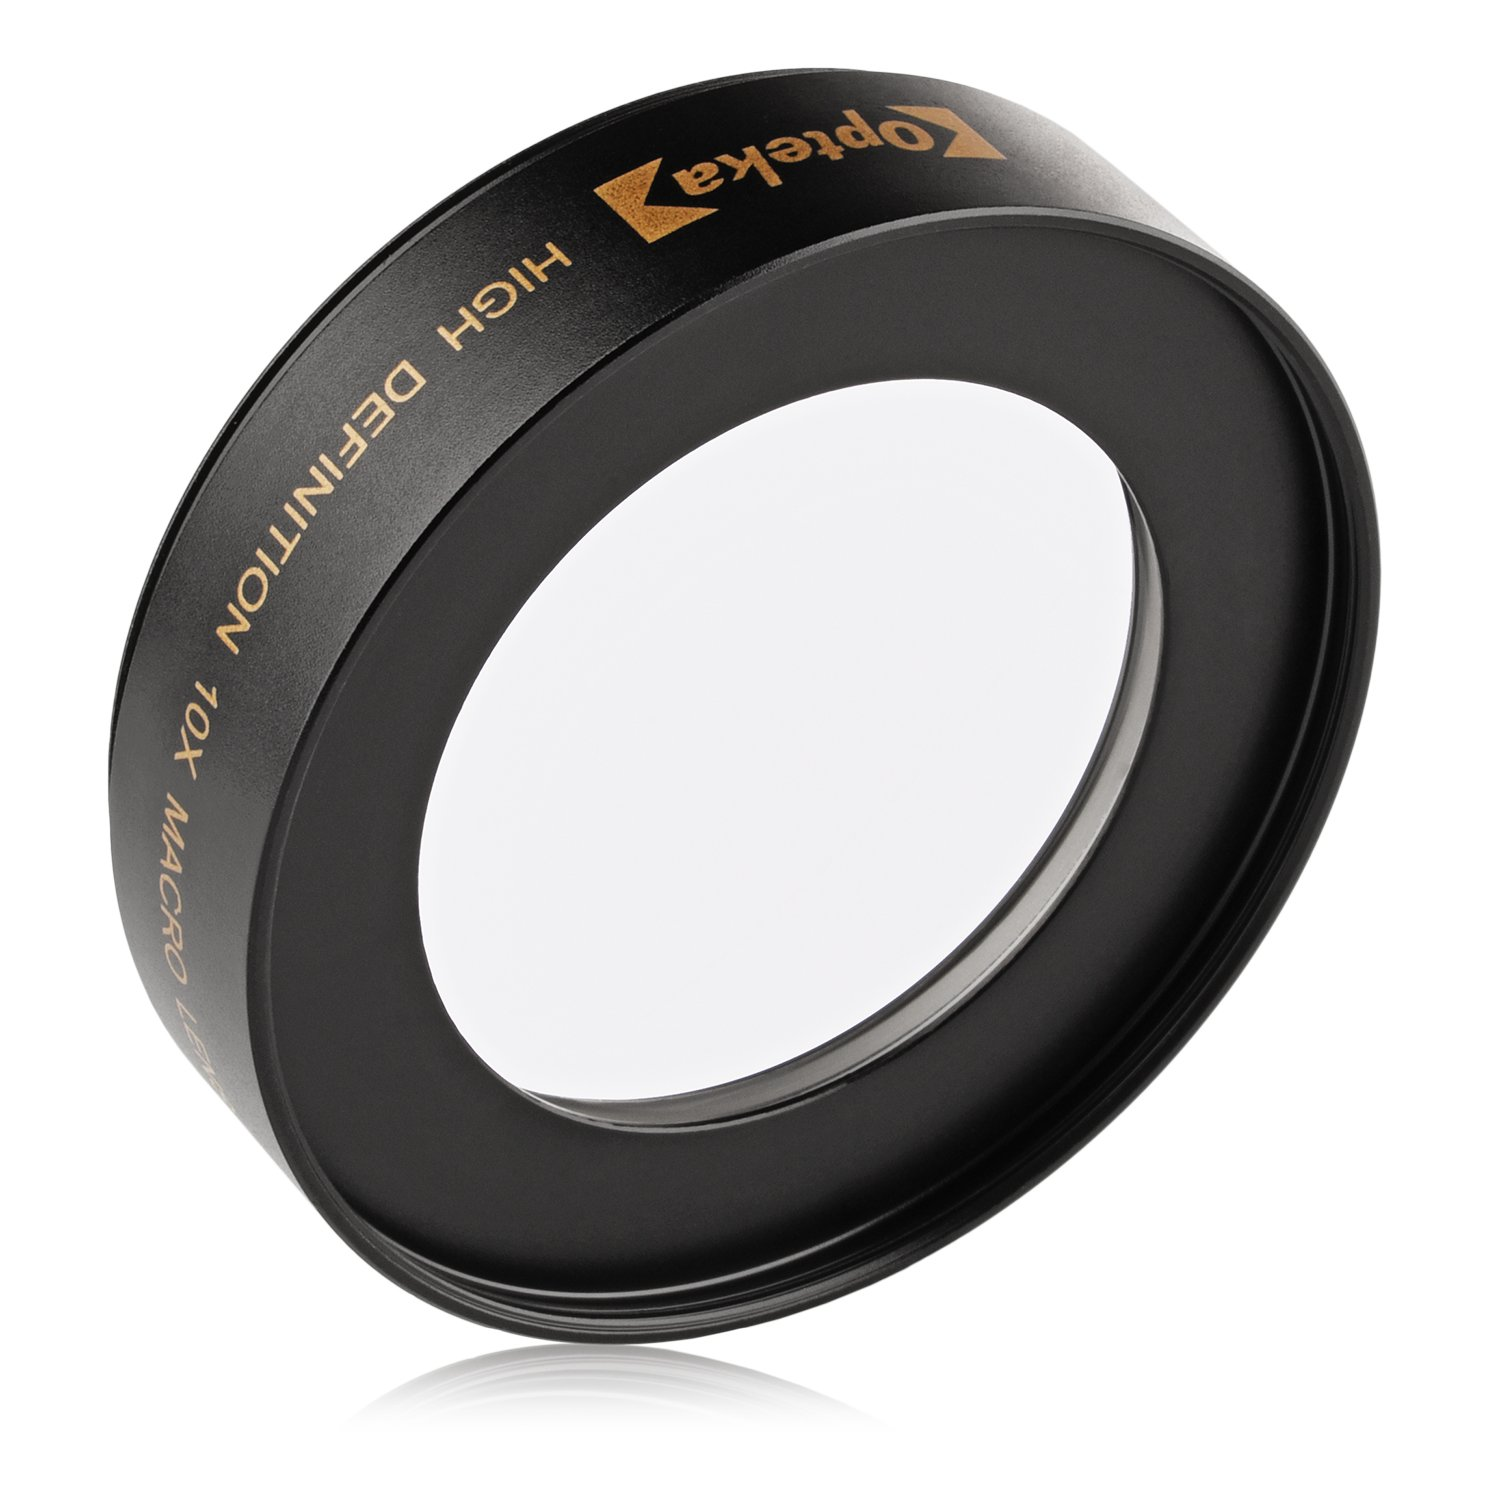 Opteka Achromatic 10x Diopter Macro Lens for Nikon D5, D4, D810, D800, D750, D610, D500, D7200, D7100, D7000, D5500, D5300, D5200, D3300, D3200 Digital SLR Cameras (Fits 52mm and 67mm Threaded Lenses) by Opteka